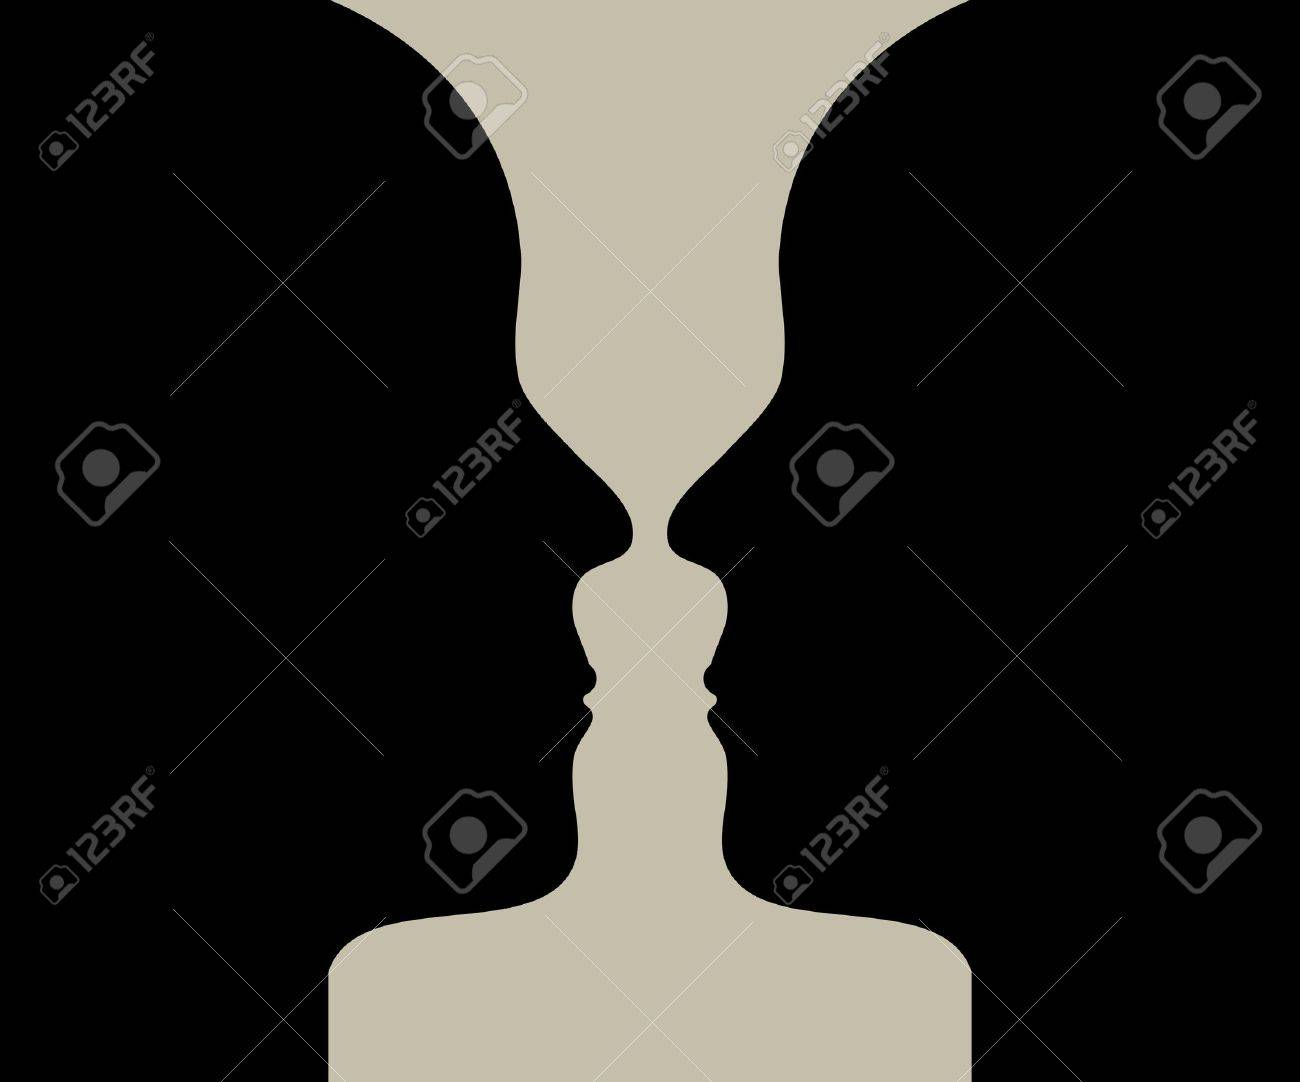 Human head make a silhouette of vase royalty free cliparts human head make a silhouette of vase stock vector 13895753 reviewsmspy